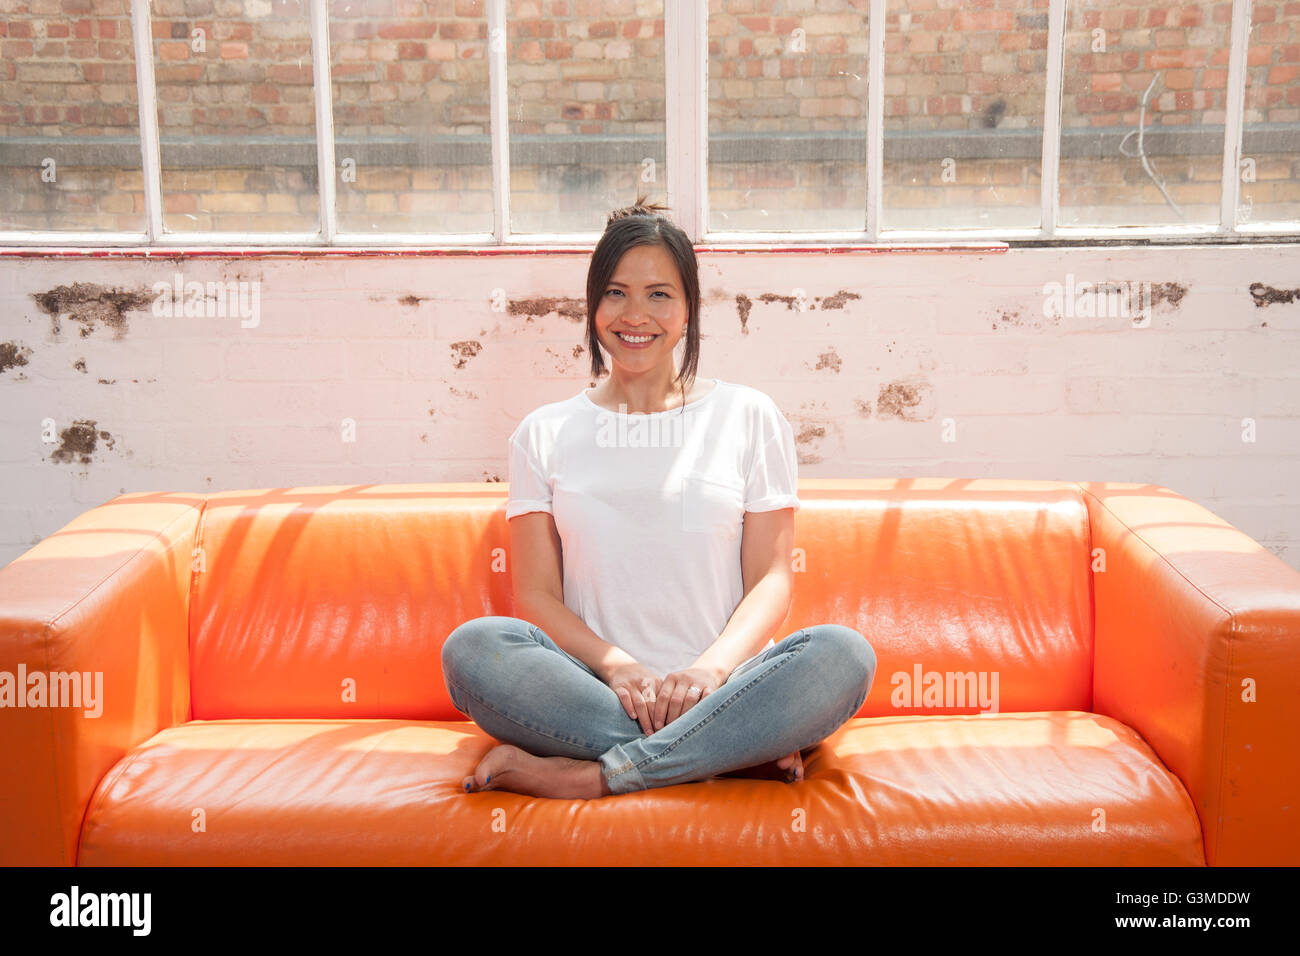 Woman sitting crossed legged on a sofa relaxing and smiling - Stock Image